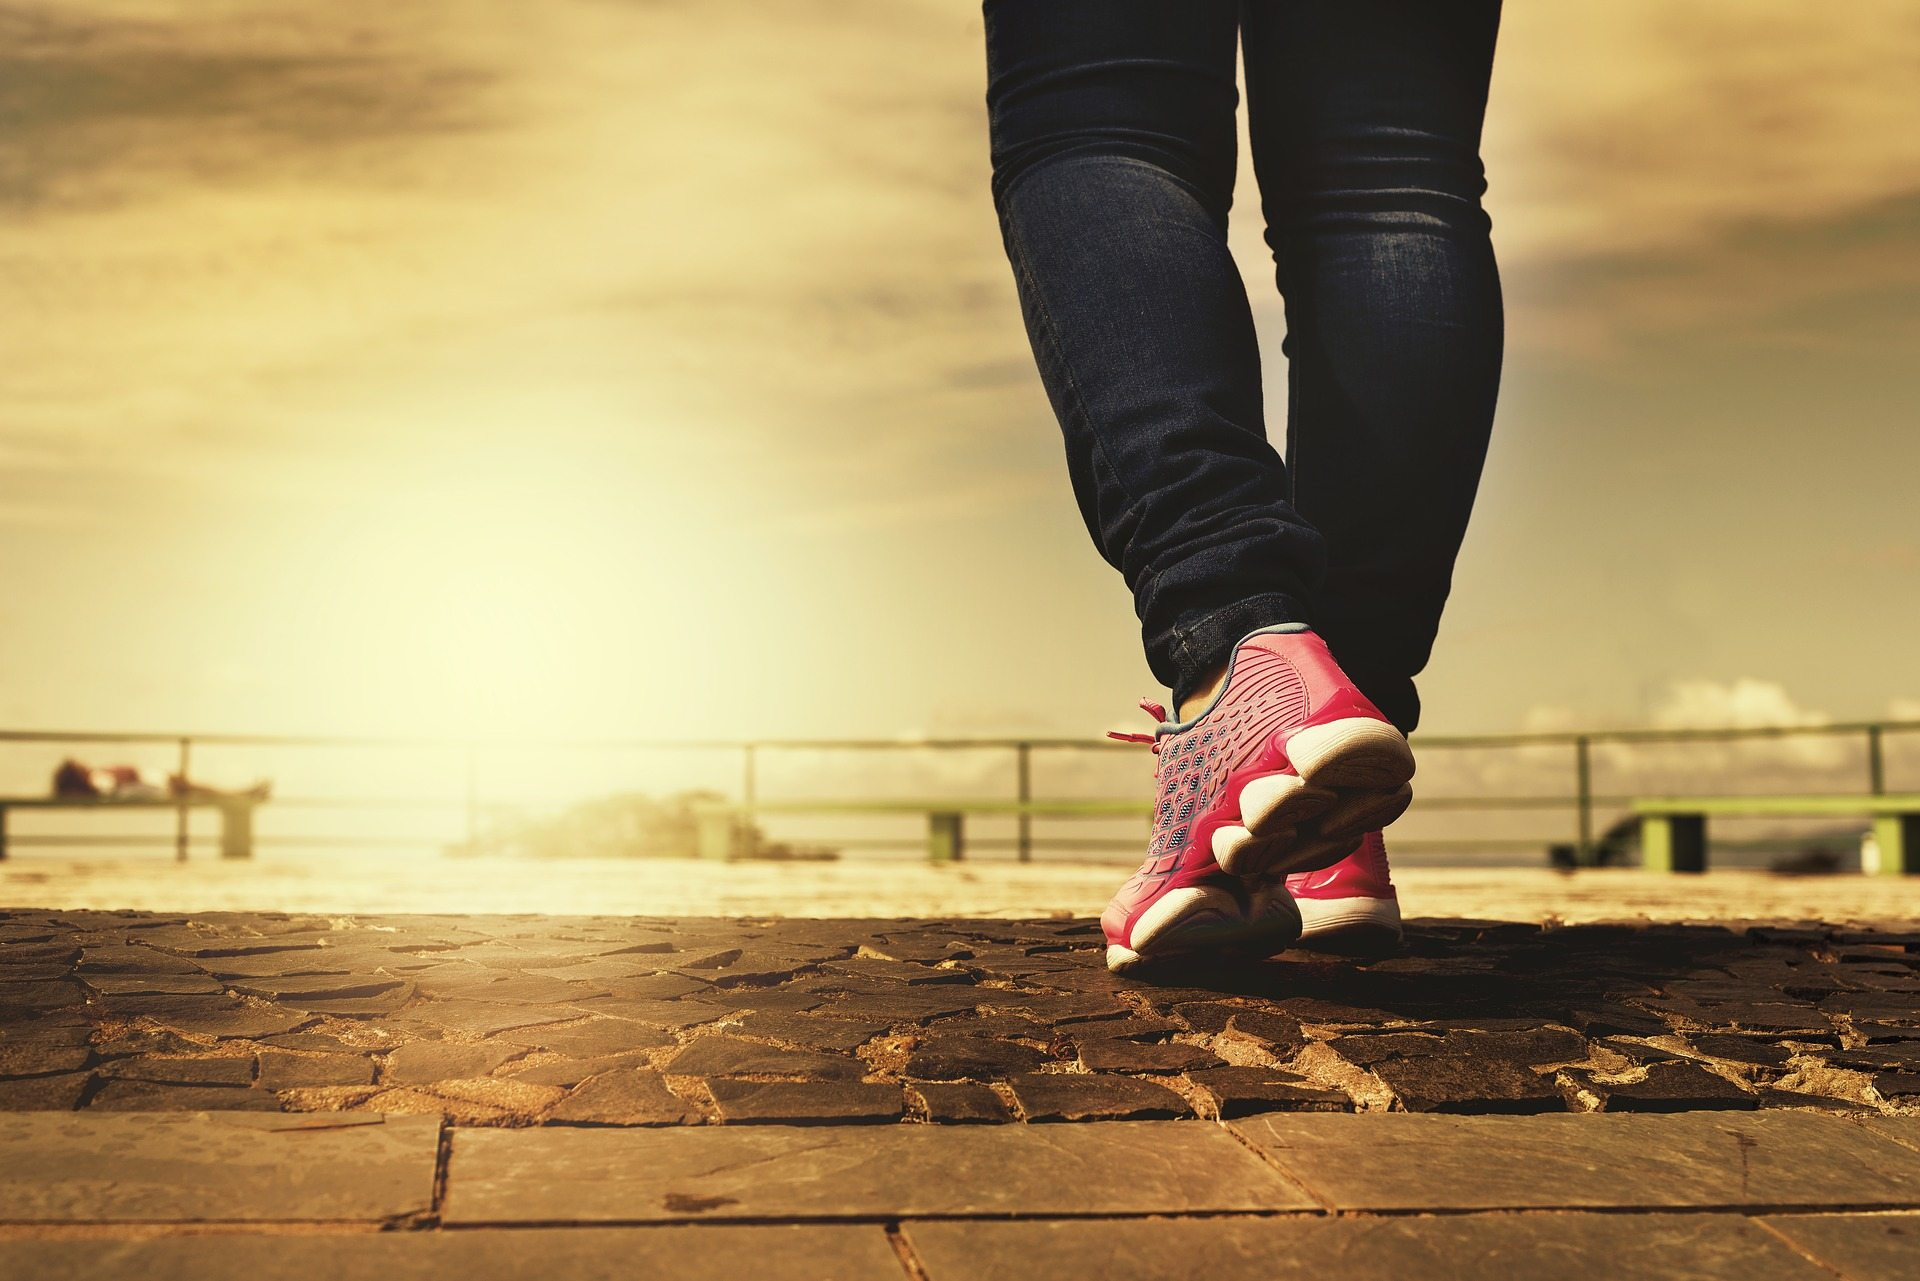 walk 2635038 1920 - 4 Simple Tips For A Happier Healthier Workday